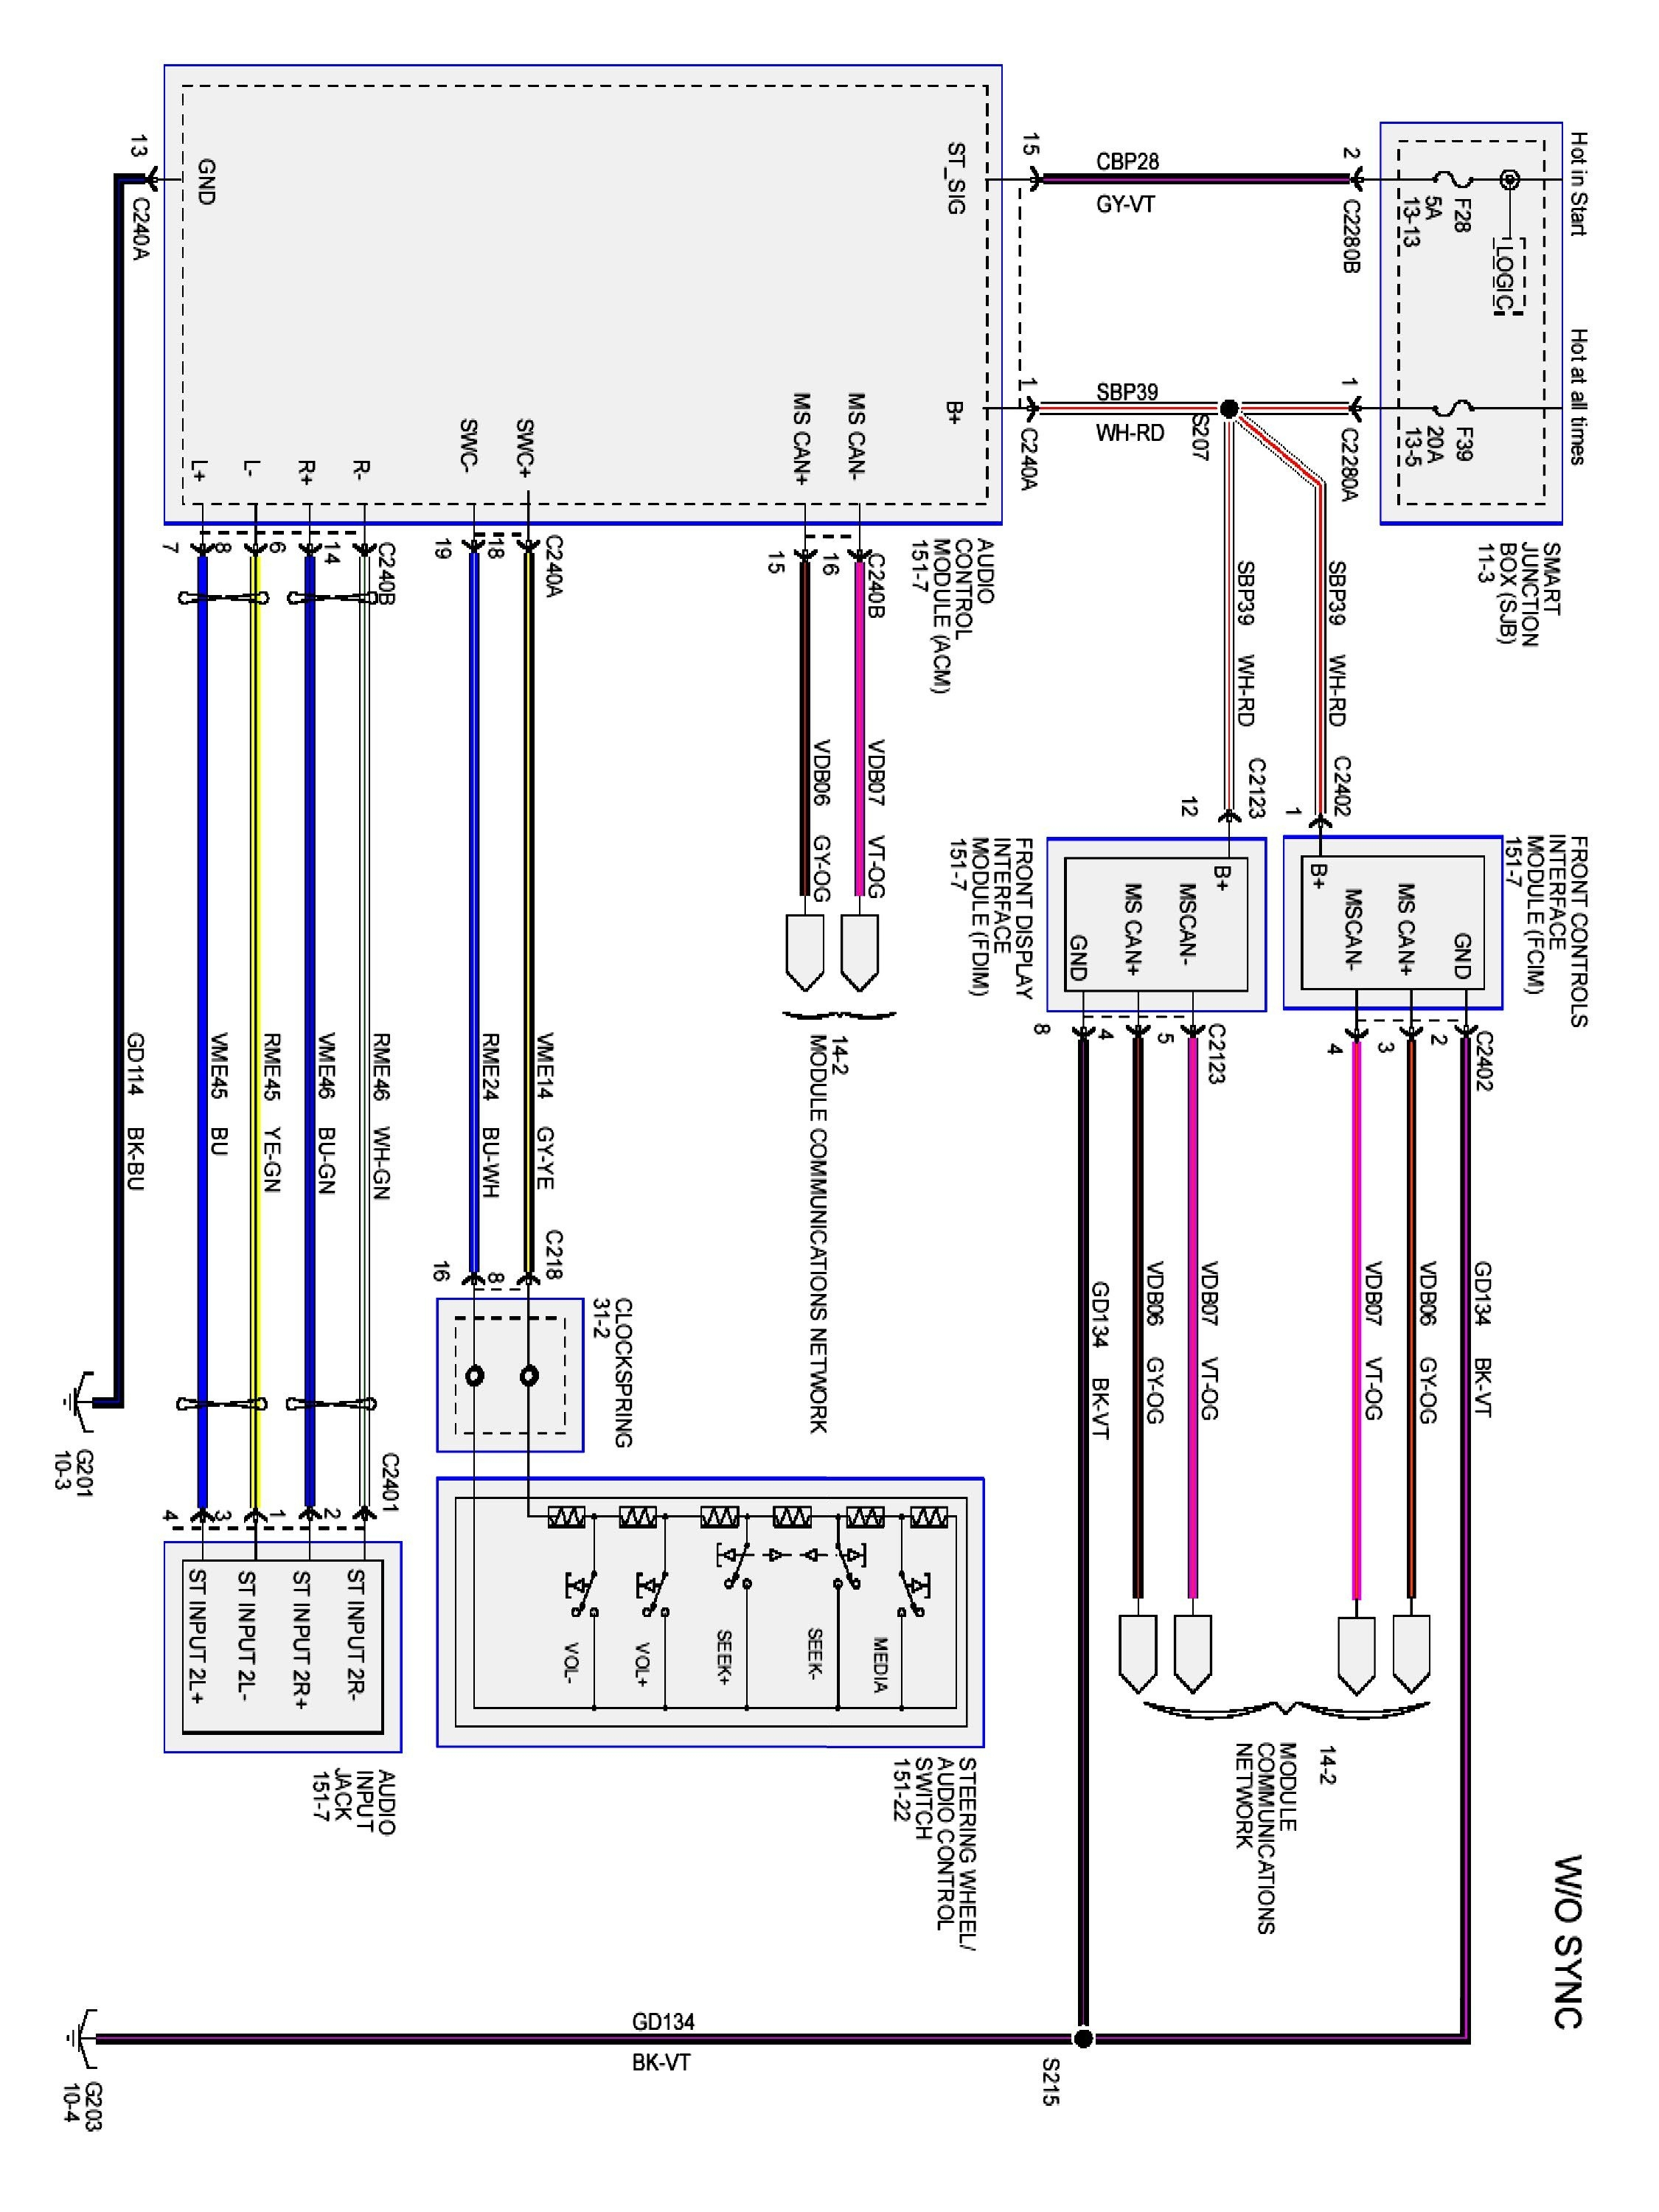 Radio Wiring Diagram For Ford Explorer on